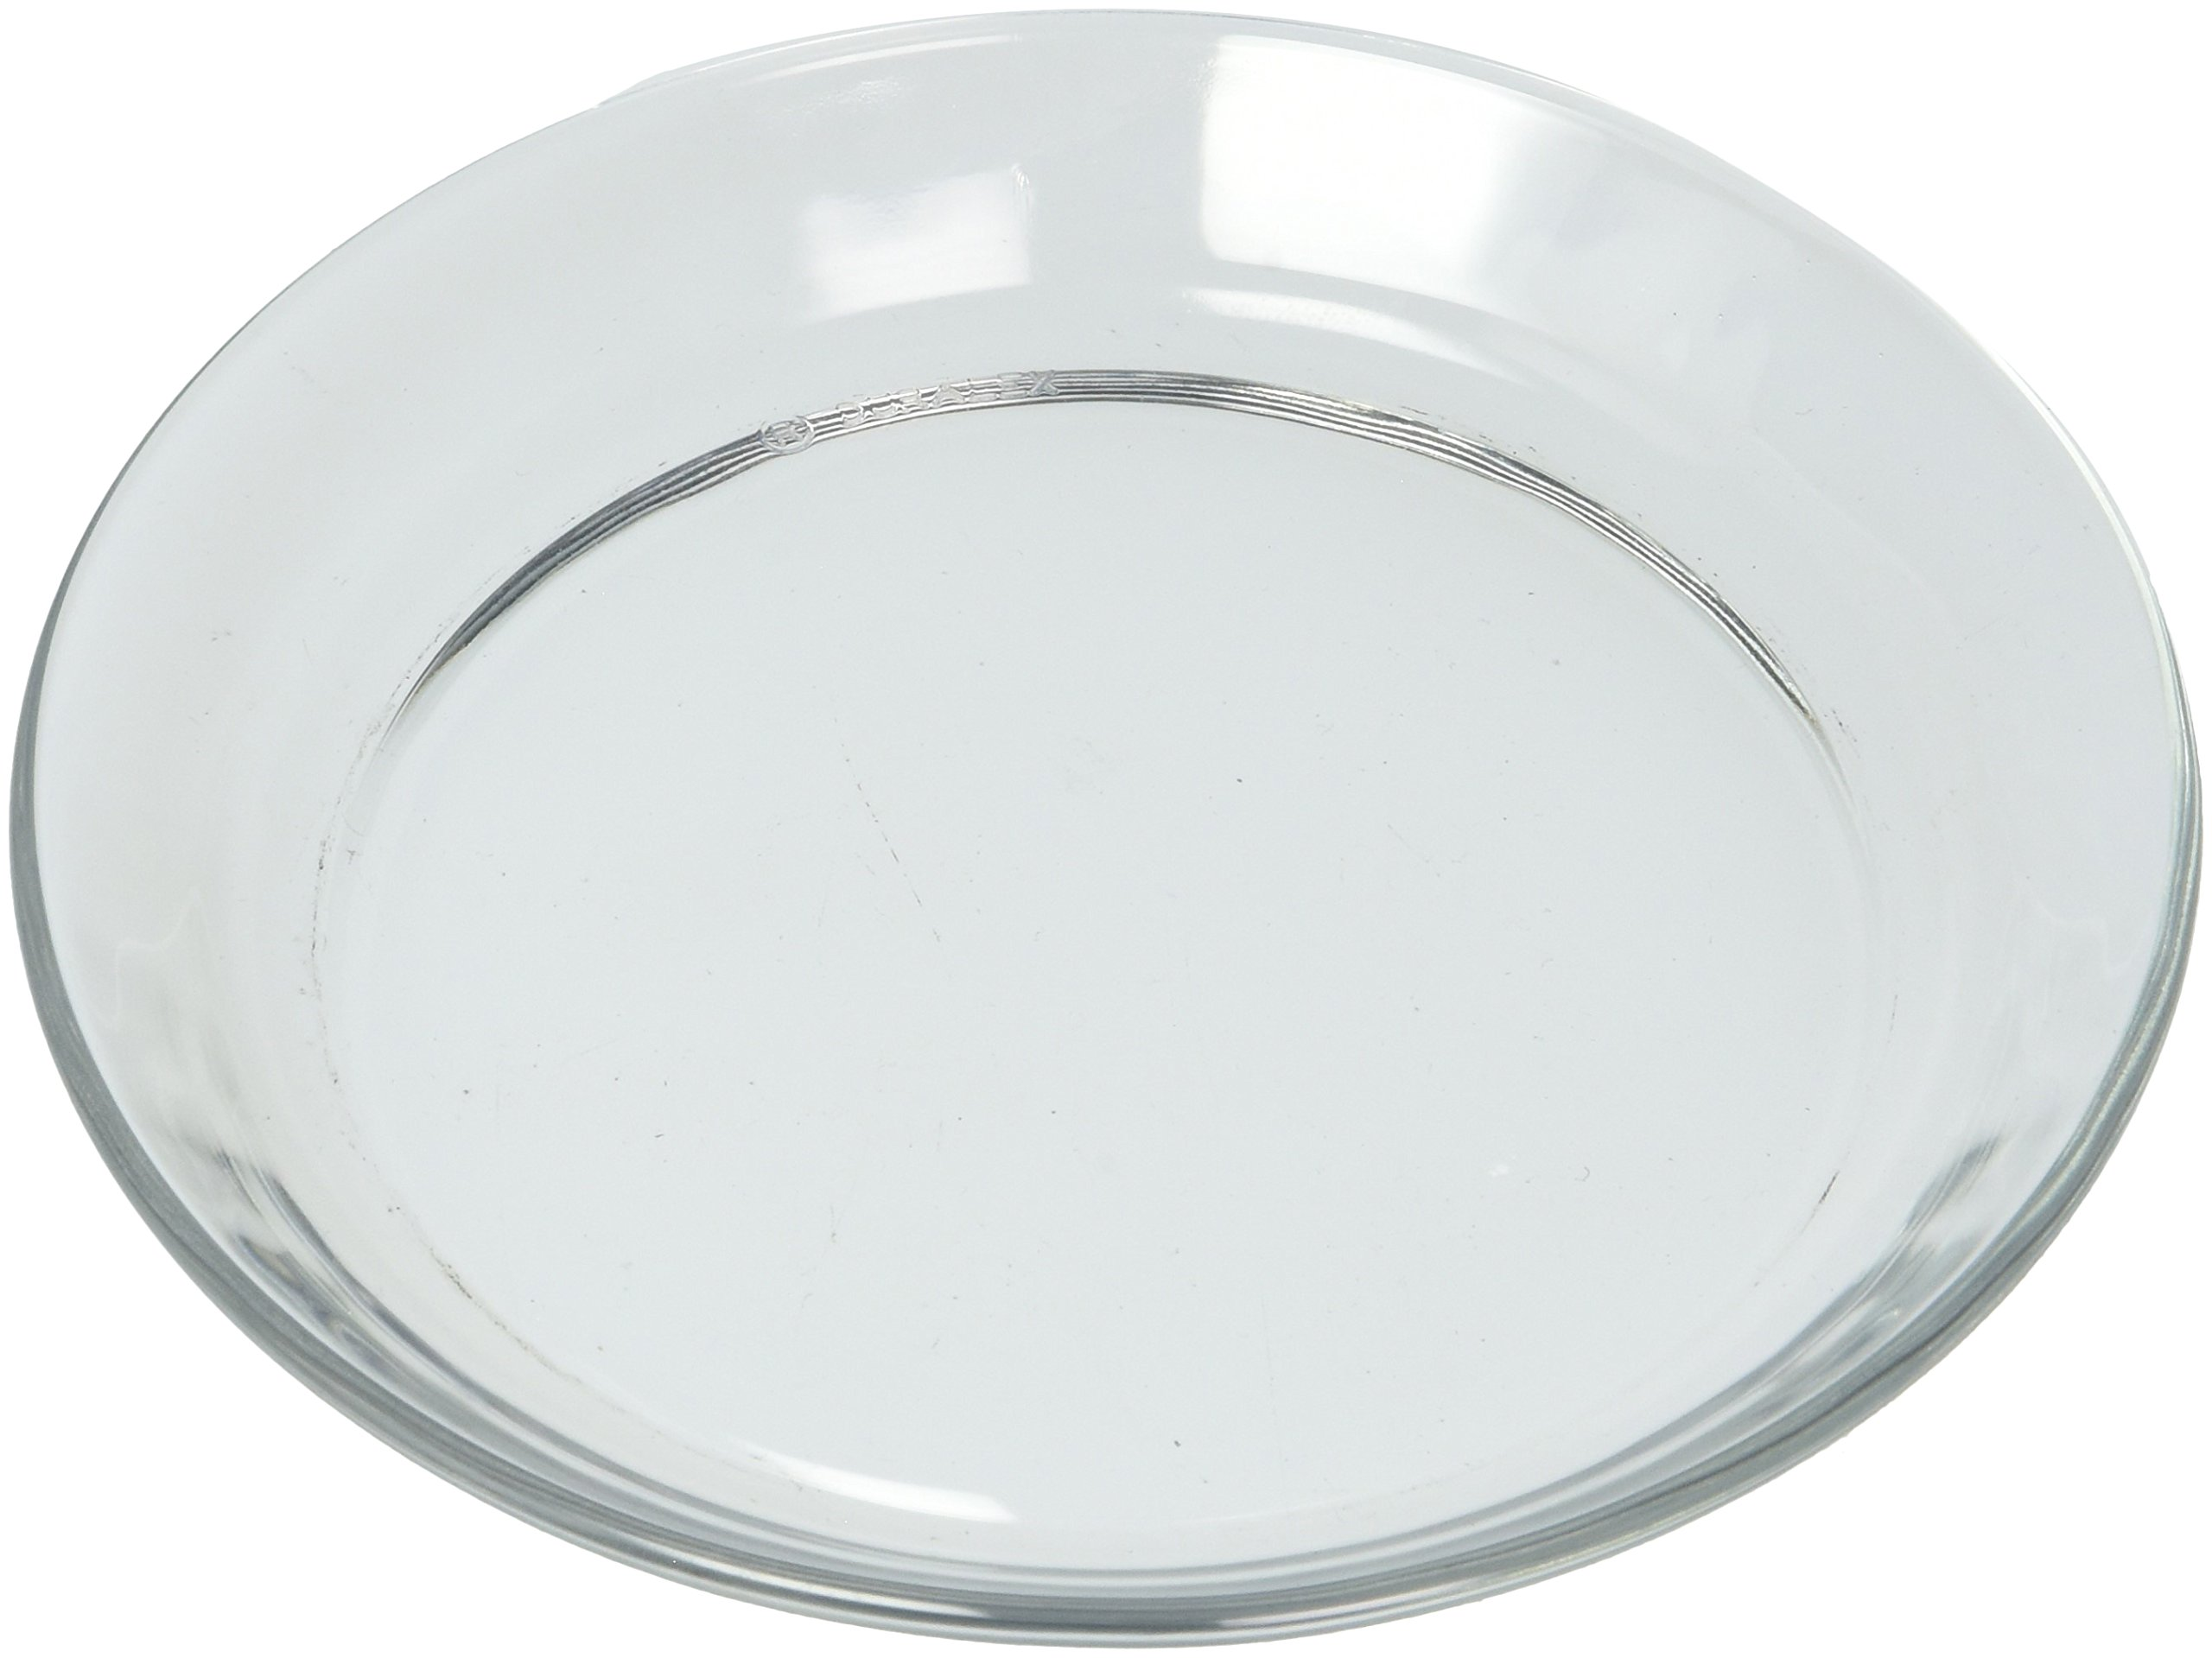 Duralex Made In France 3017AF06/4 Lys Dinnerware 5-3/8 Inch Appetizer Plate. Set of 4